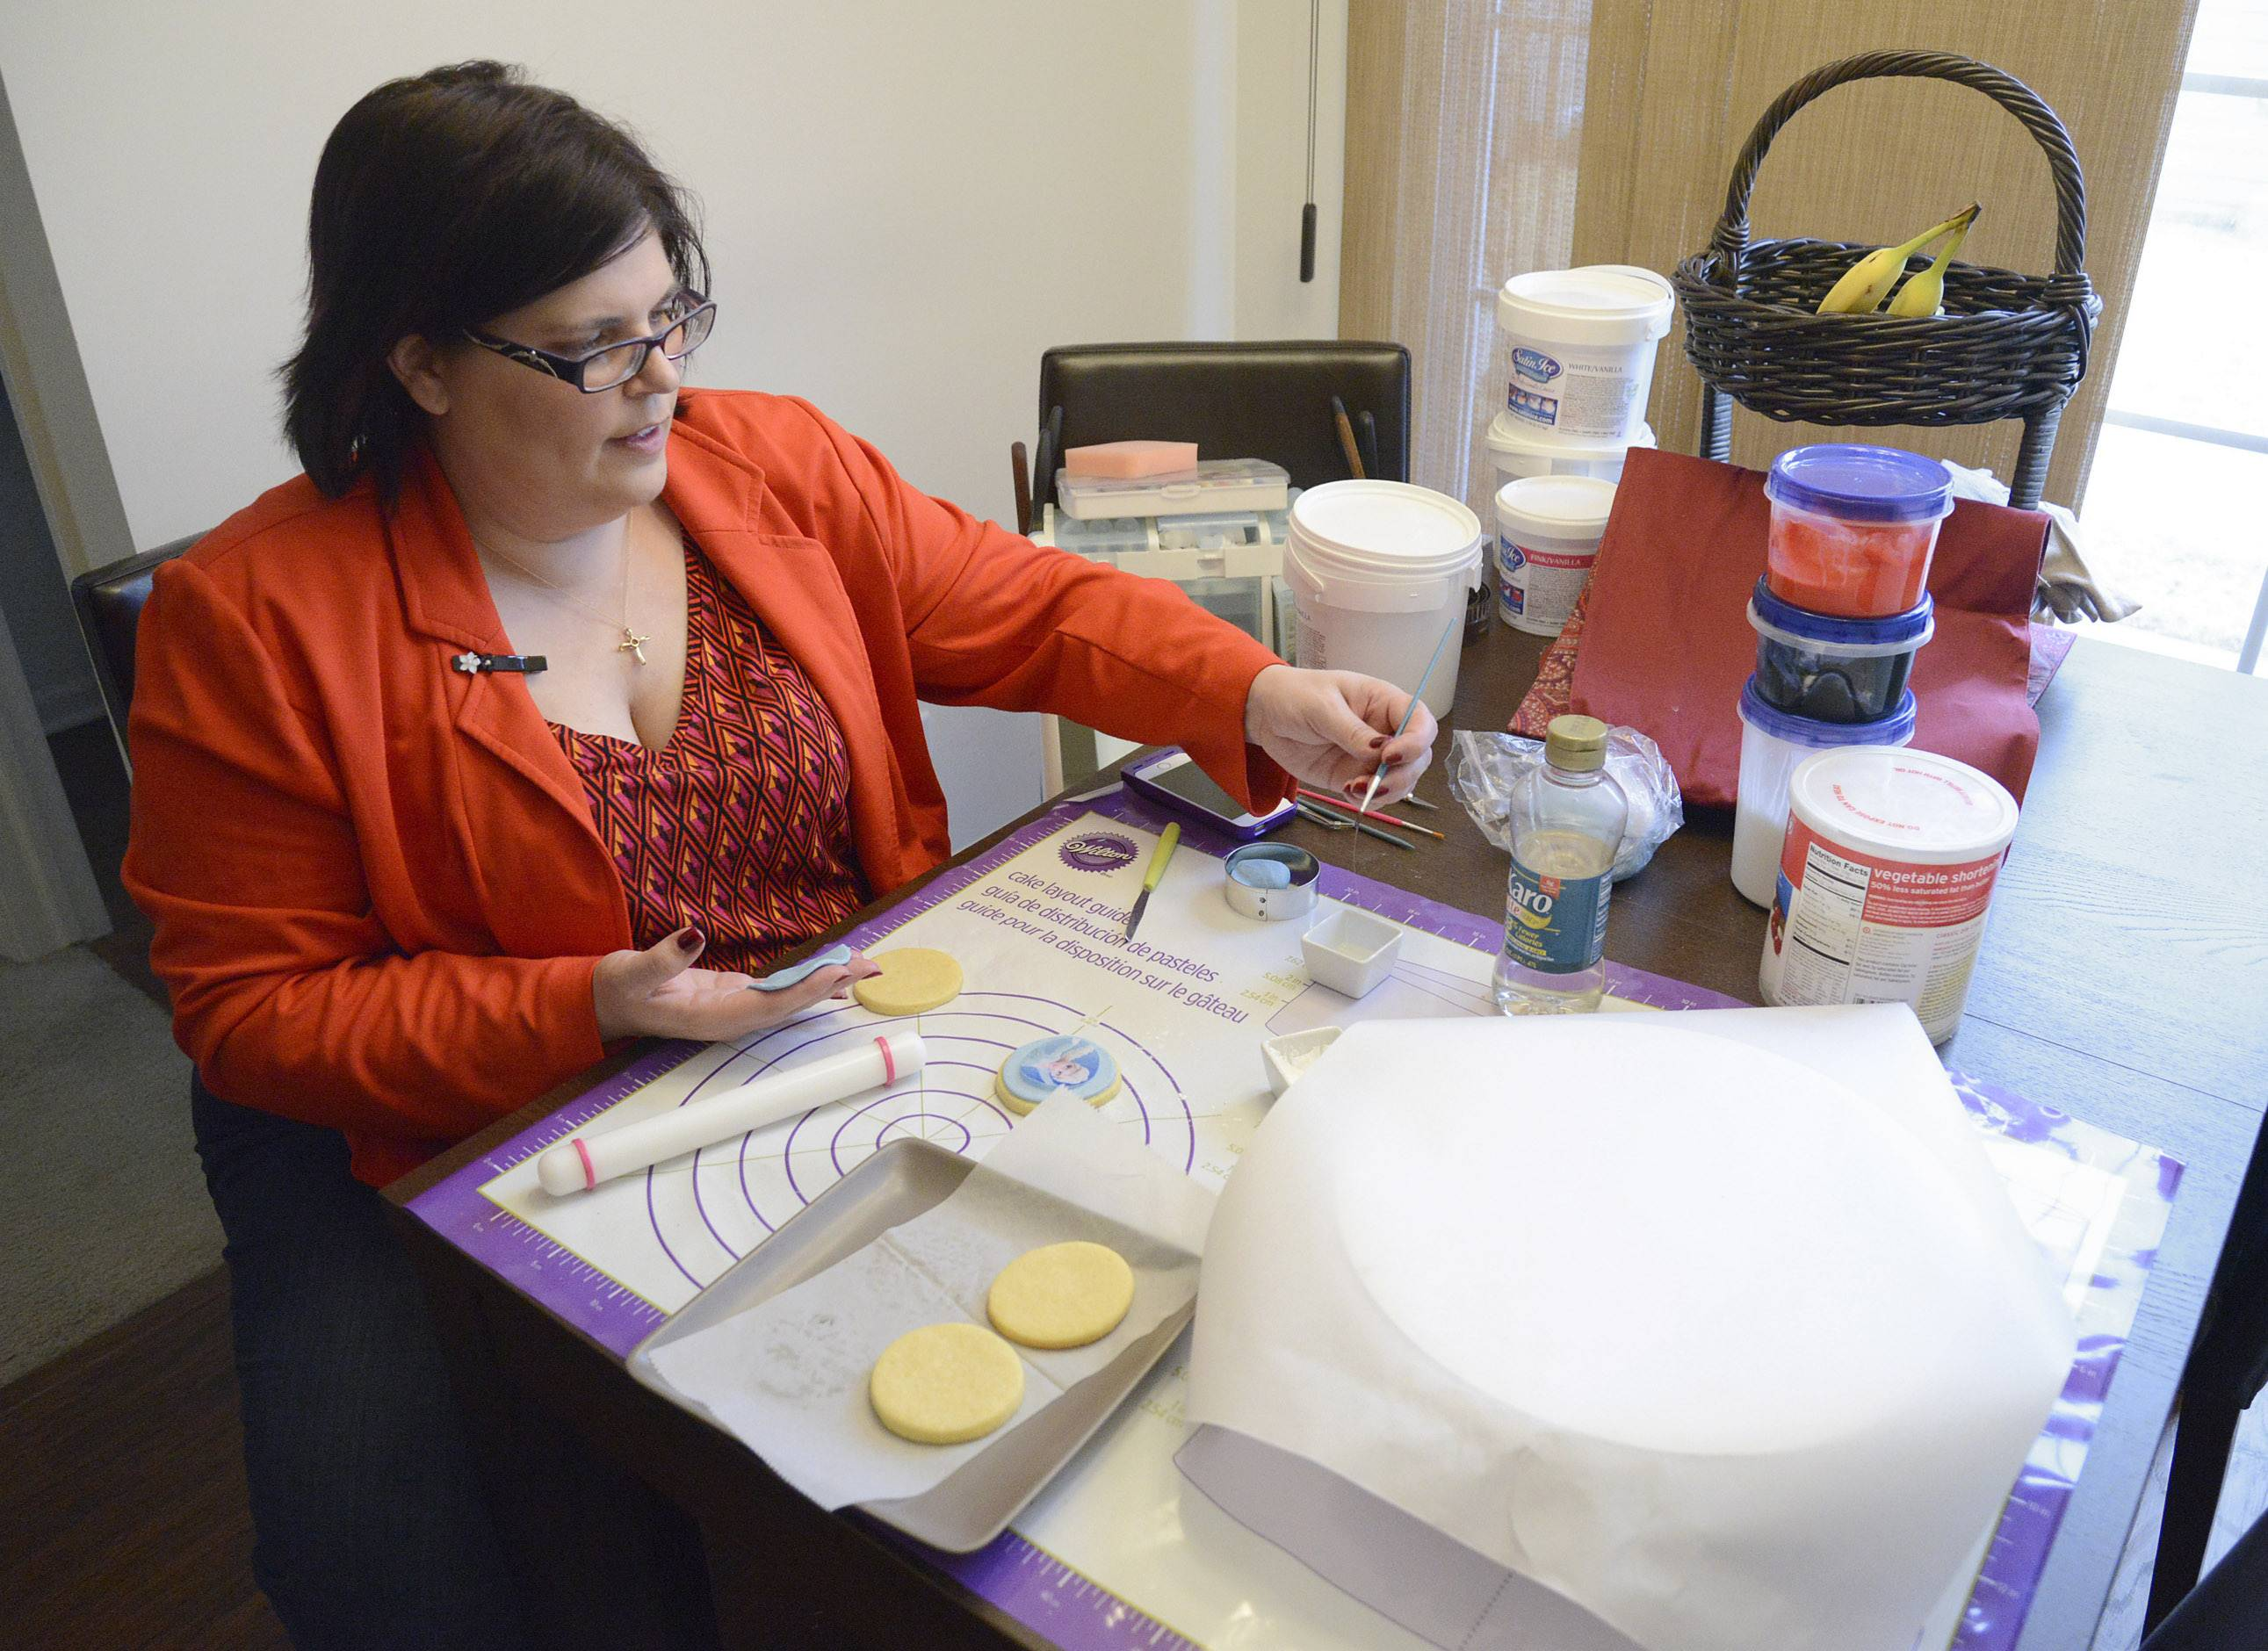 Christina Hernandez of Elgin decorates butter cookies for customers of her FanCThatEvents cookie shop on Etsy.com.